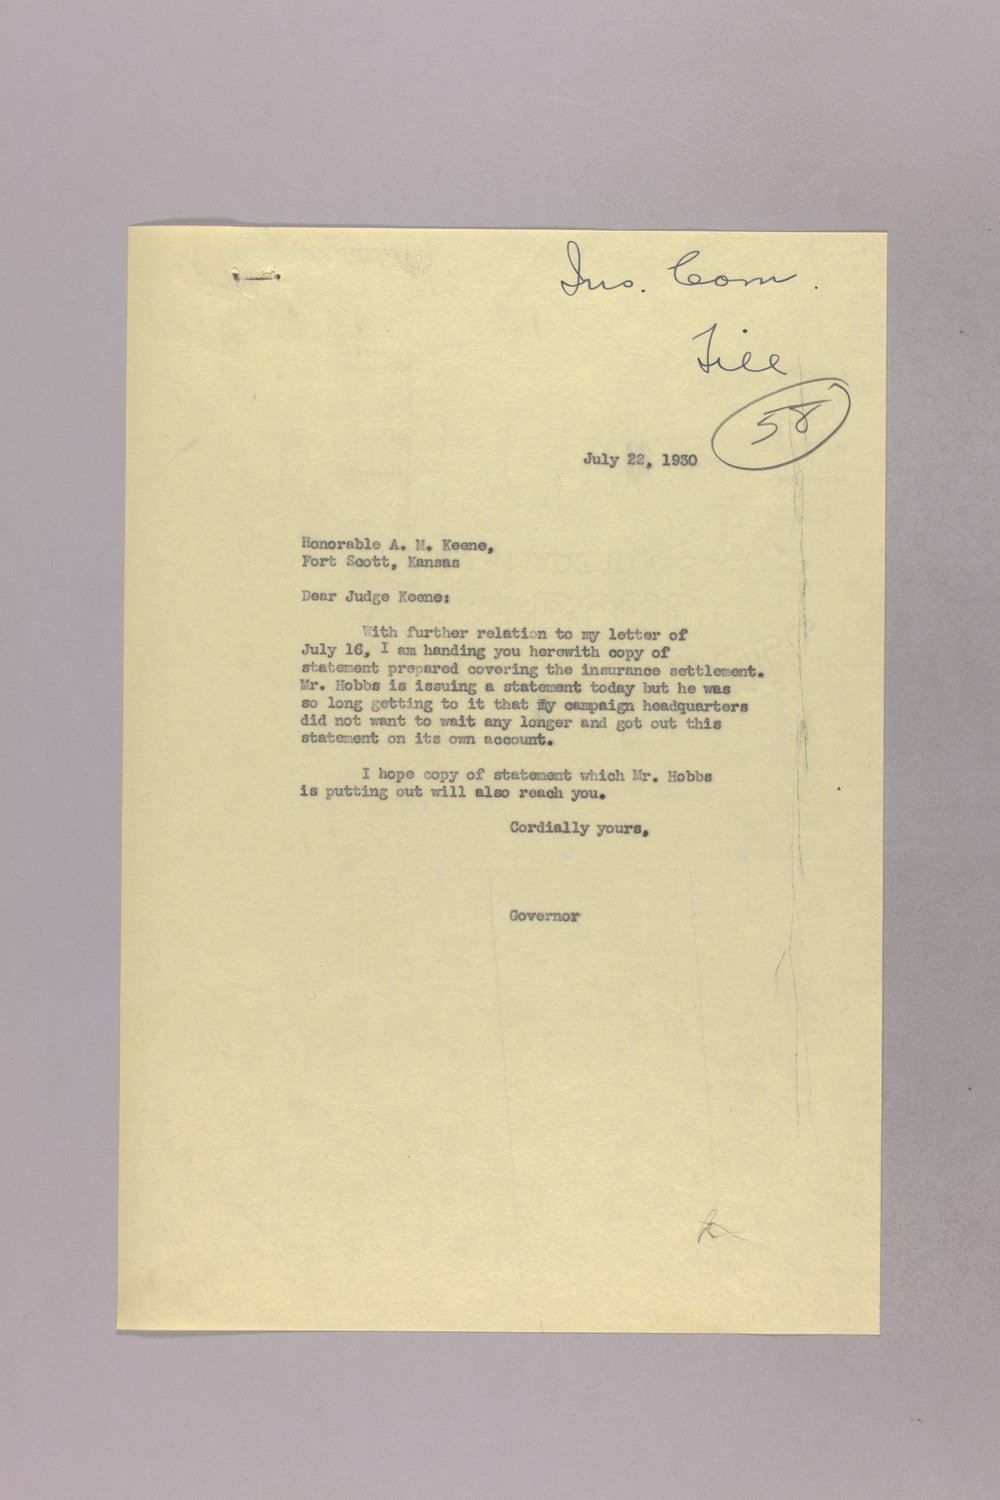 Governor Clyde M. Reed correspondence, hail insurance deduction - 7